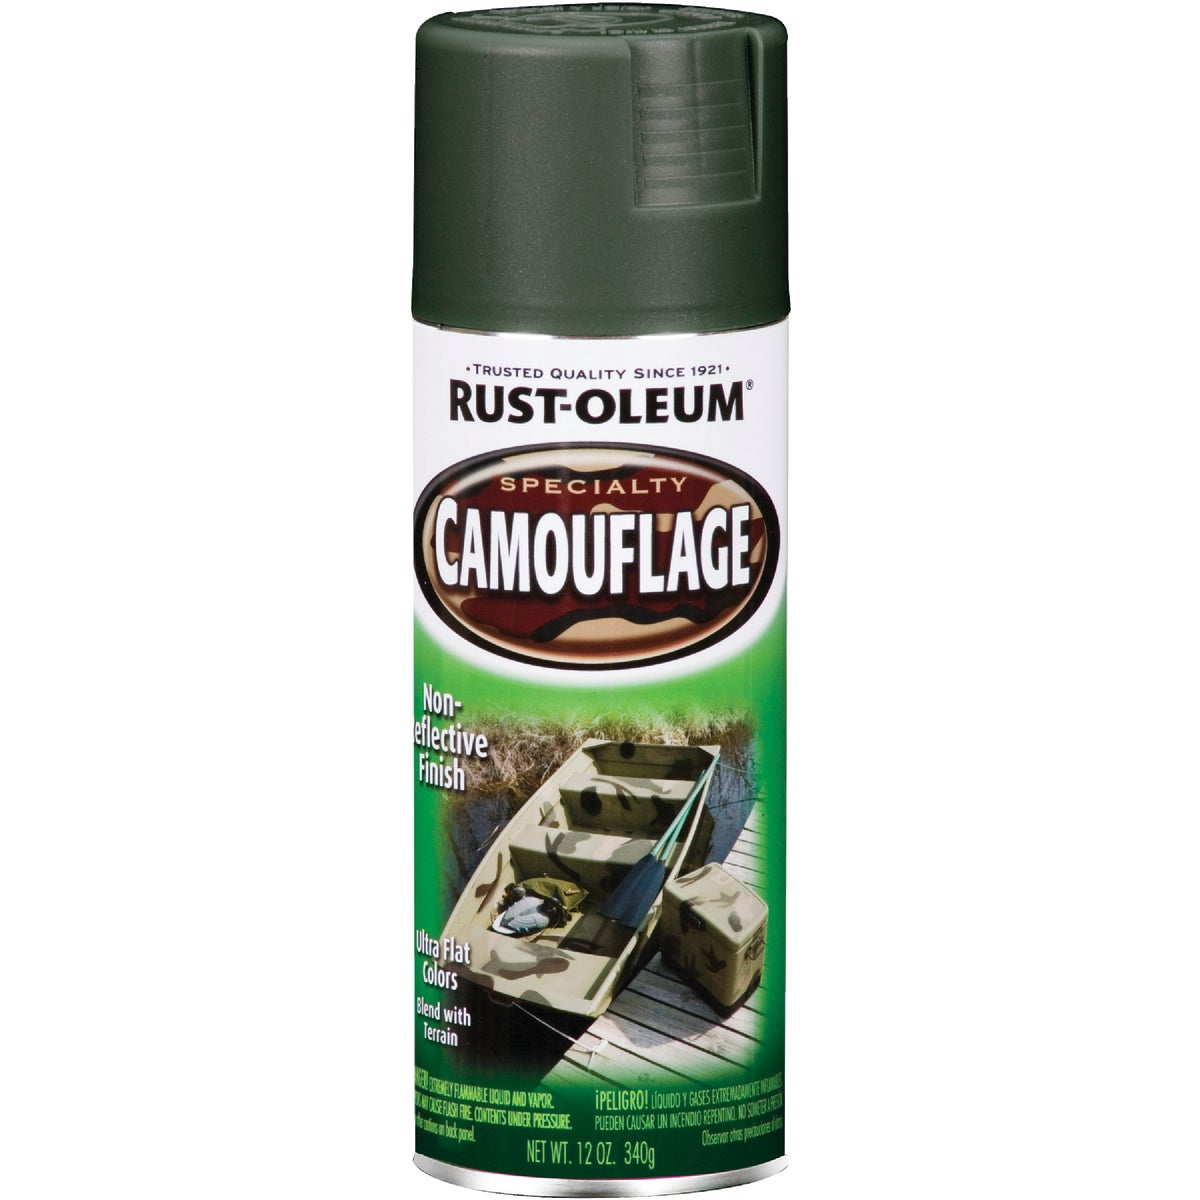 FOR GRN CAMO SPRAY PAINT - 1919-830 by Rustoleum